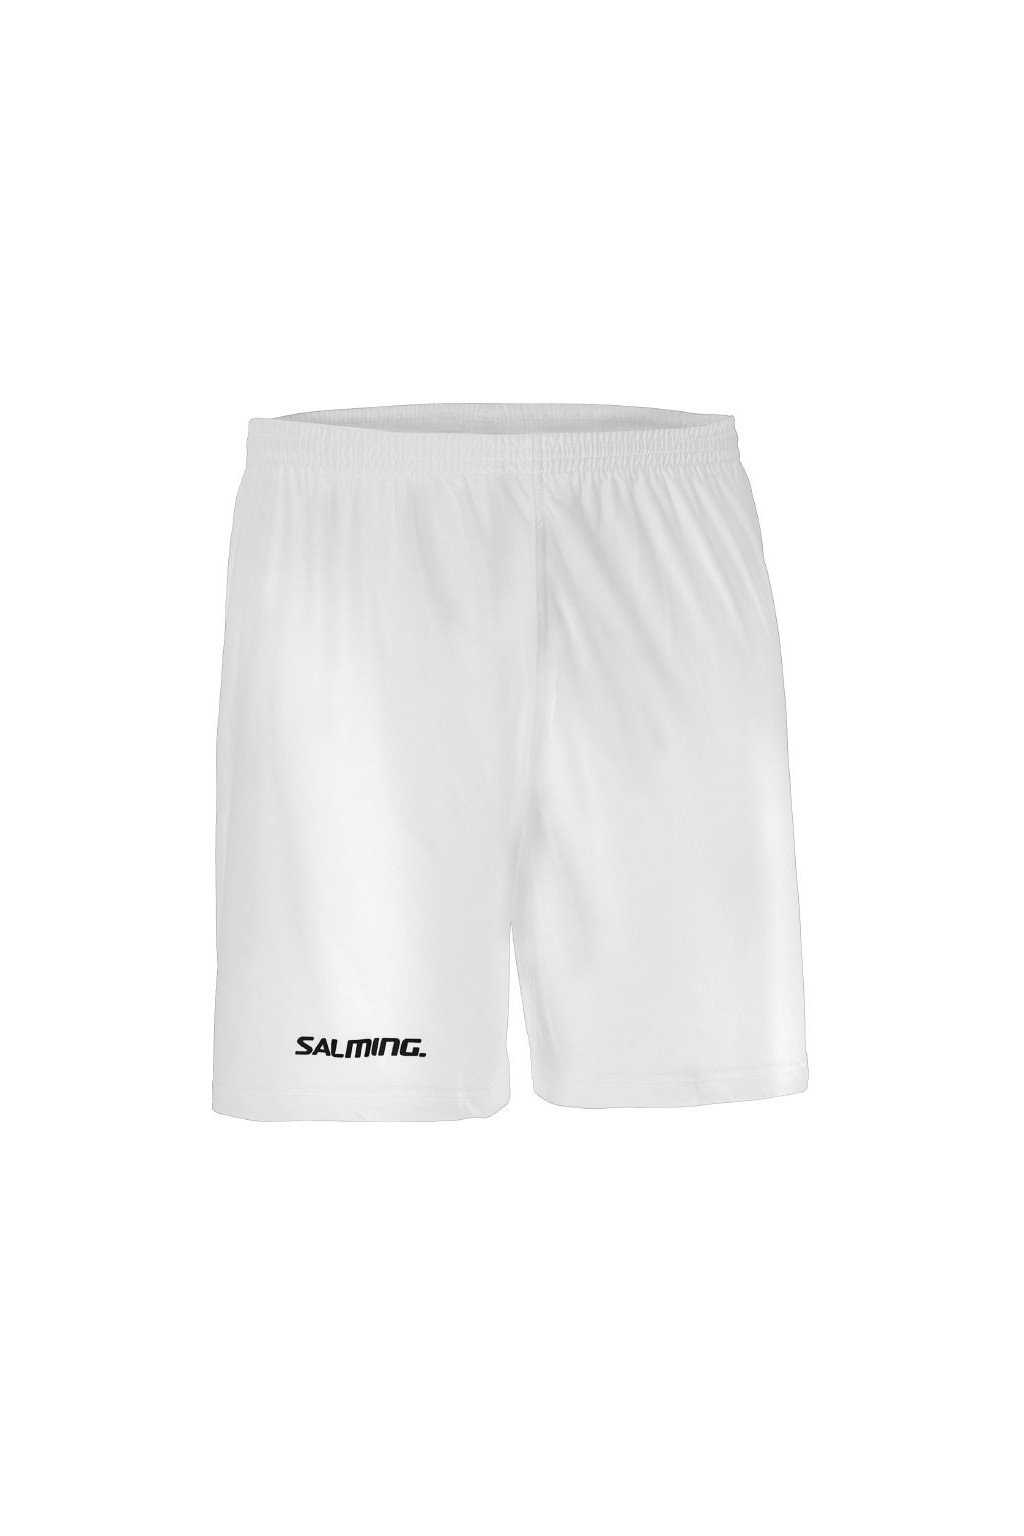 salming core shorts sr white xxxl